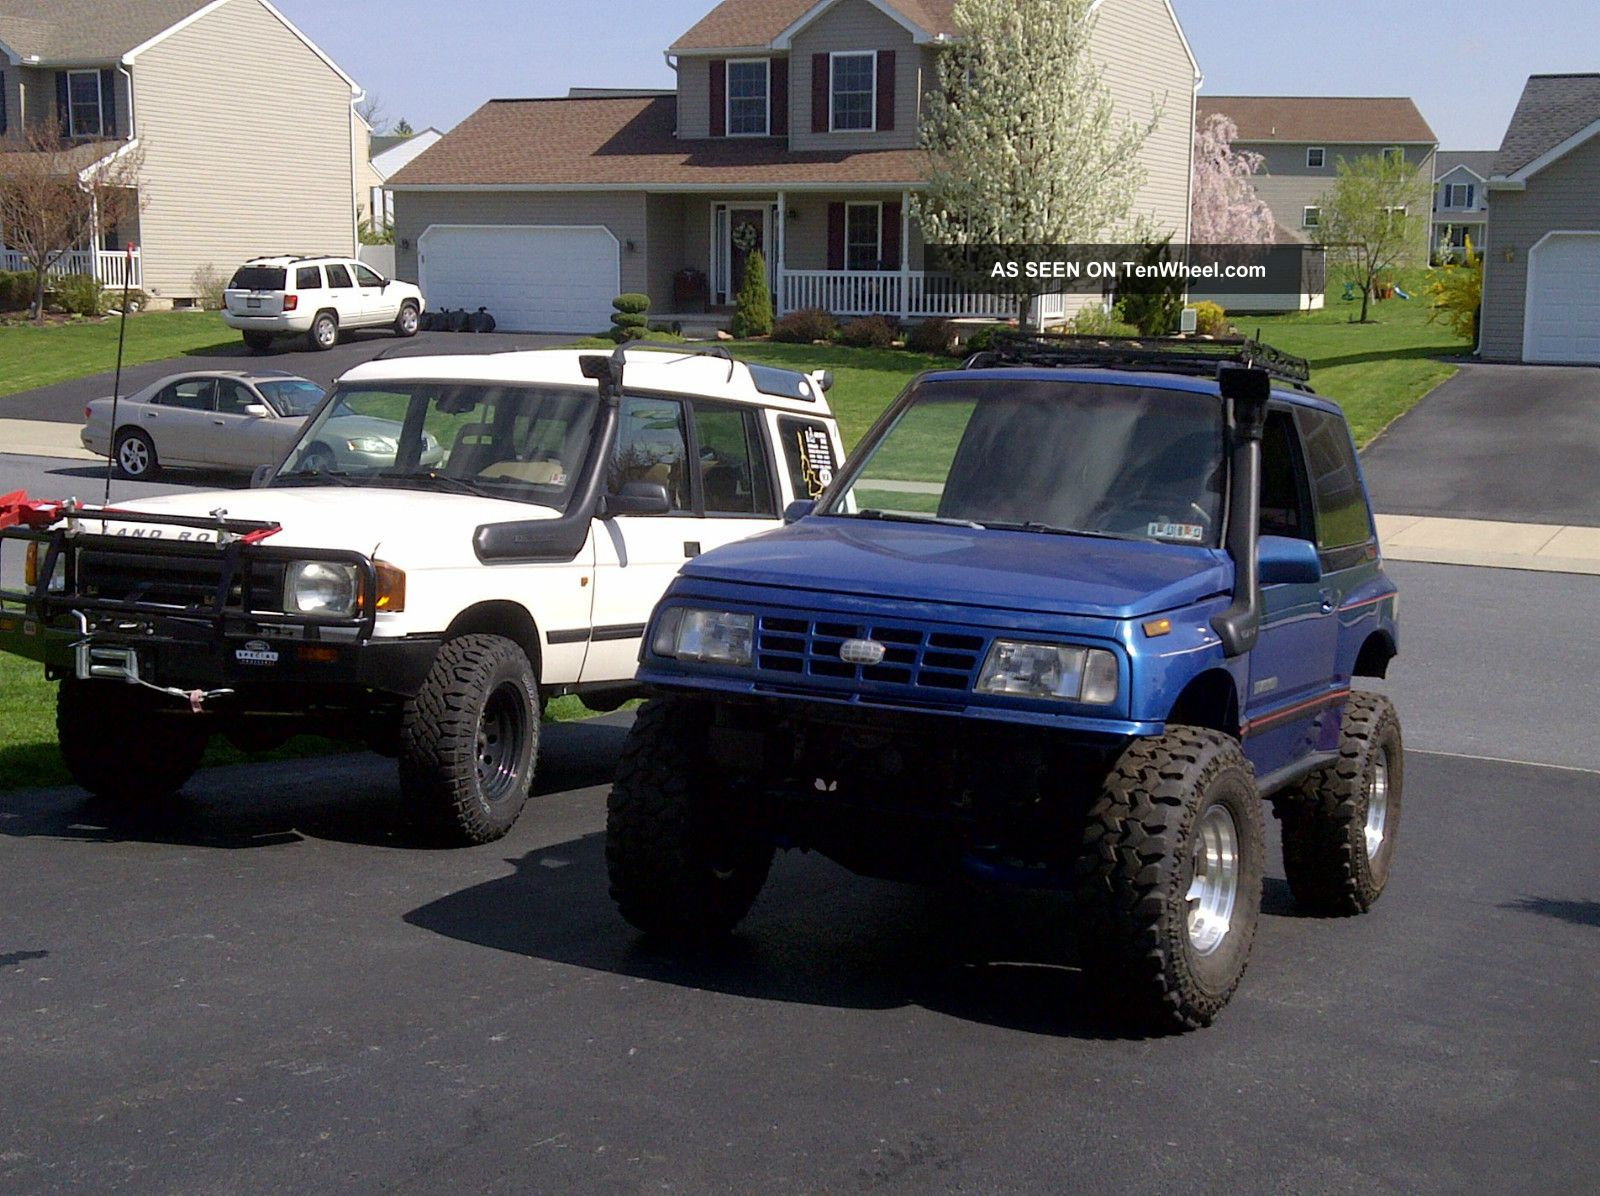 1991 Geo Tracker Lsi 4x4 - Rock Crawler - Snorkel Calmini Lift - 32